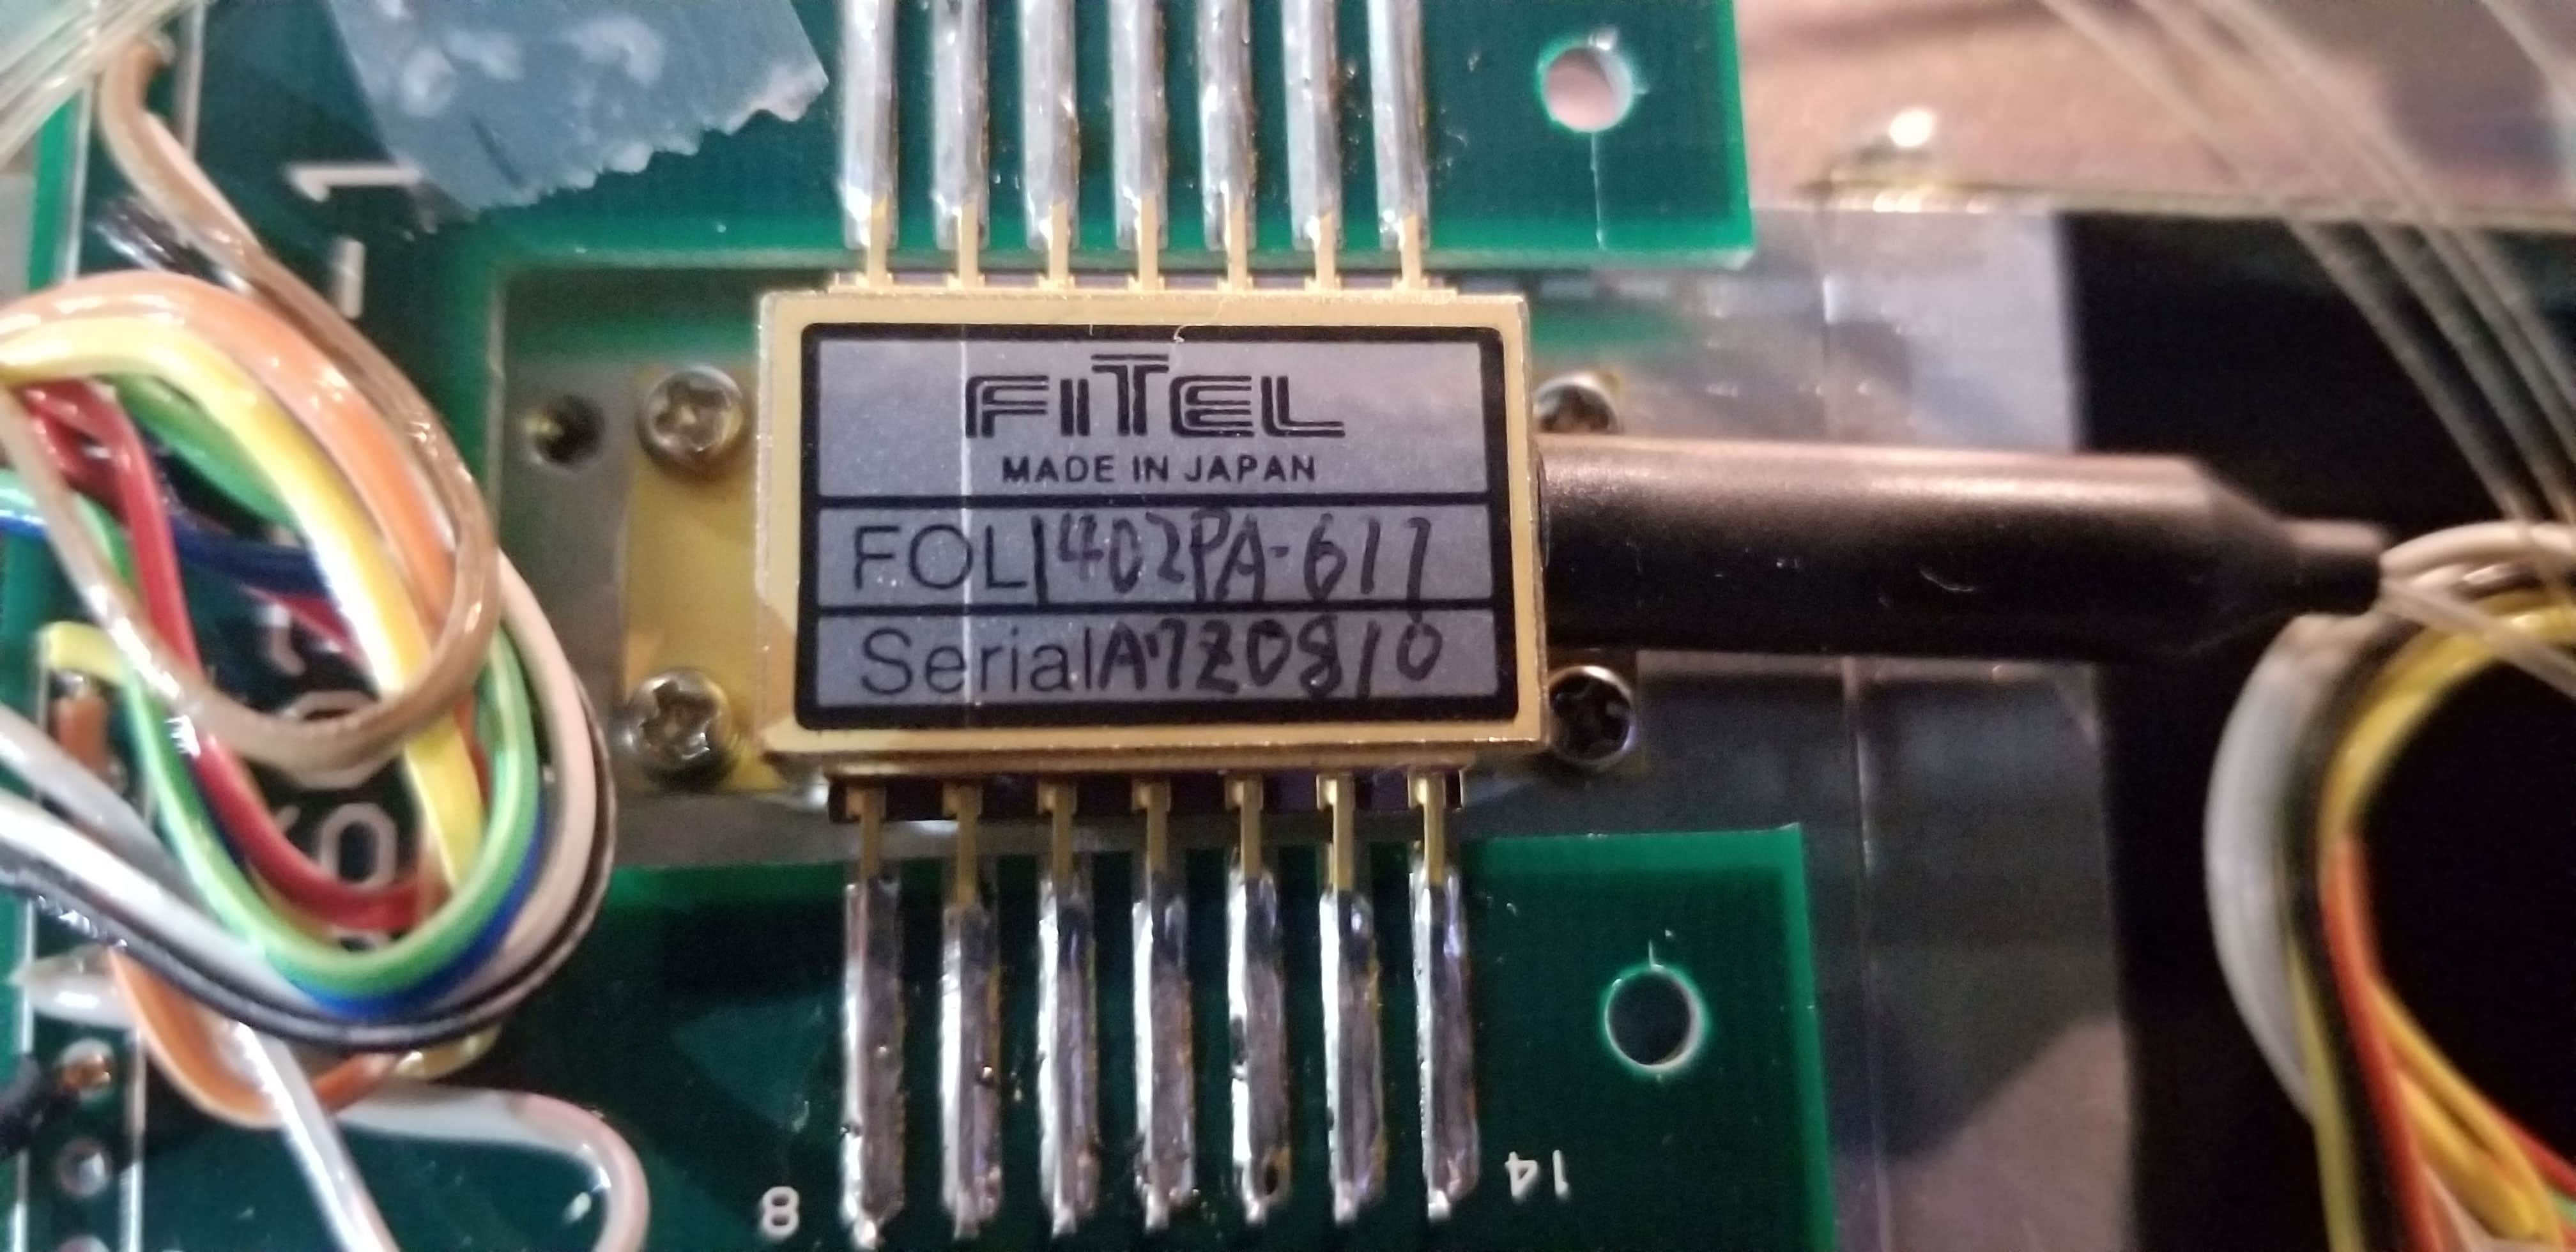 Fitel HPU : High-powered Pumping Unit : HPU1360 : 6-channel Photonic Amplifier 1480nm laser diodes